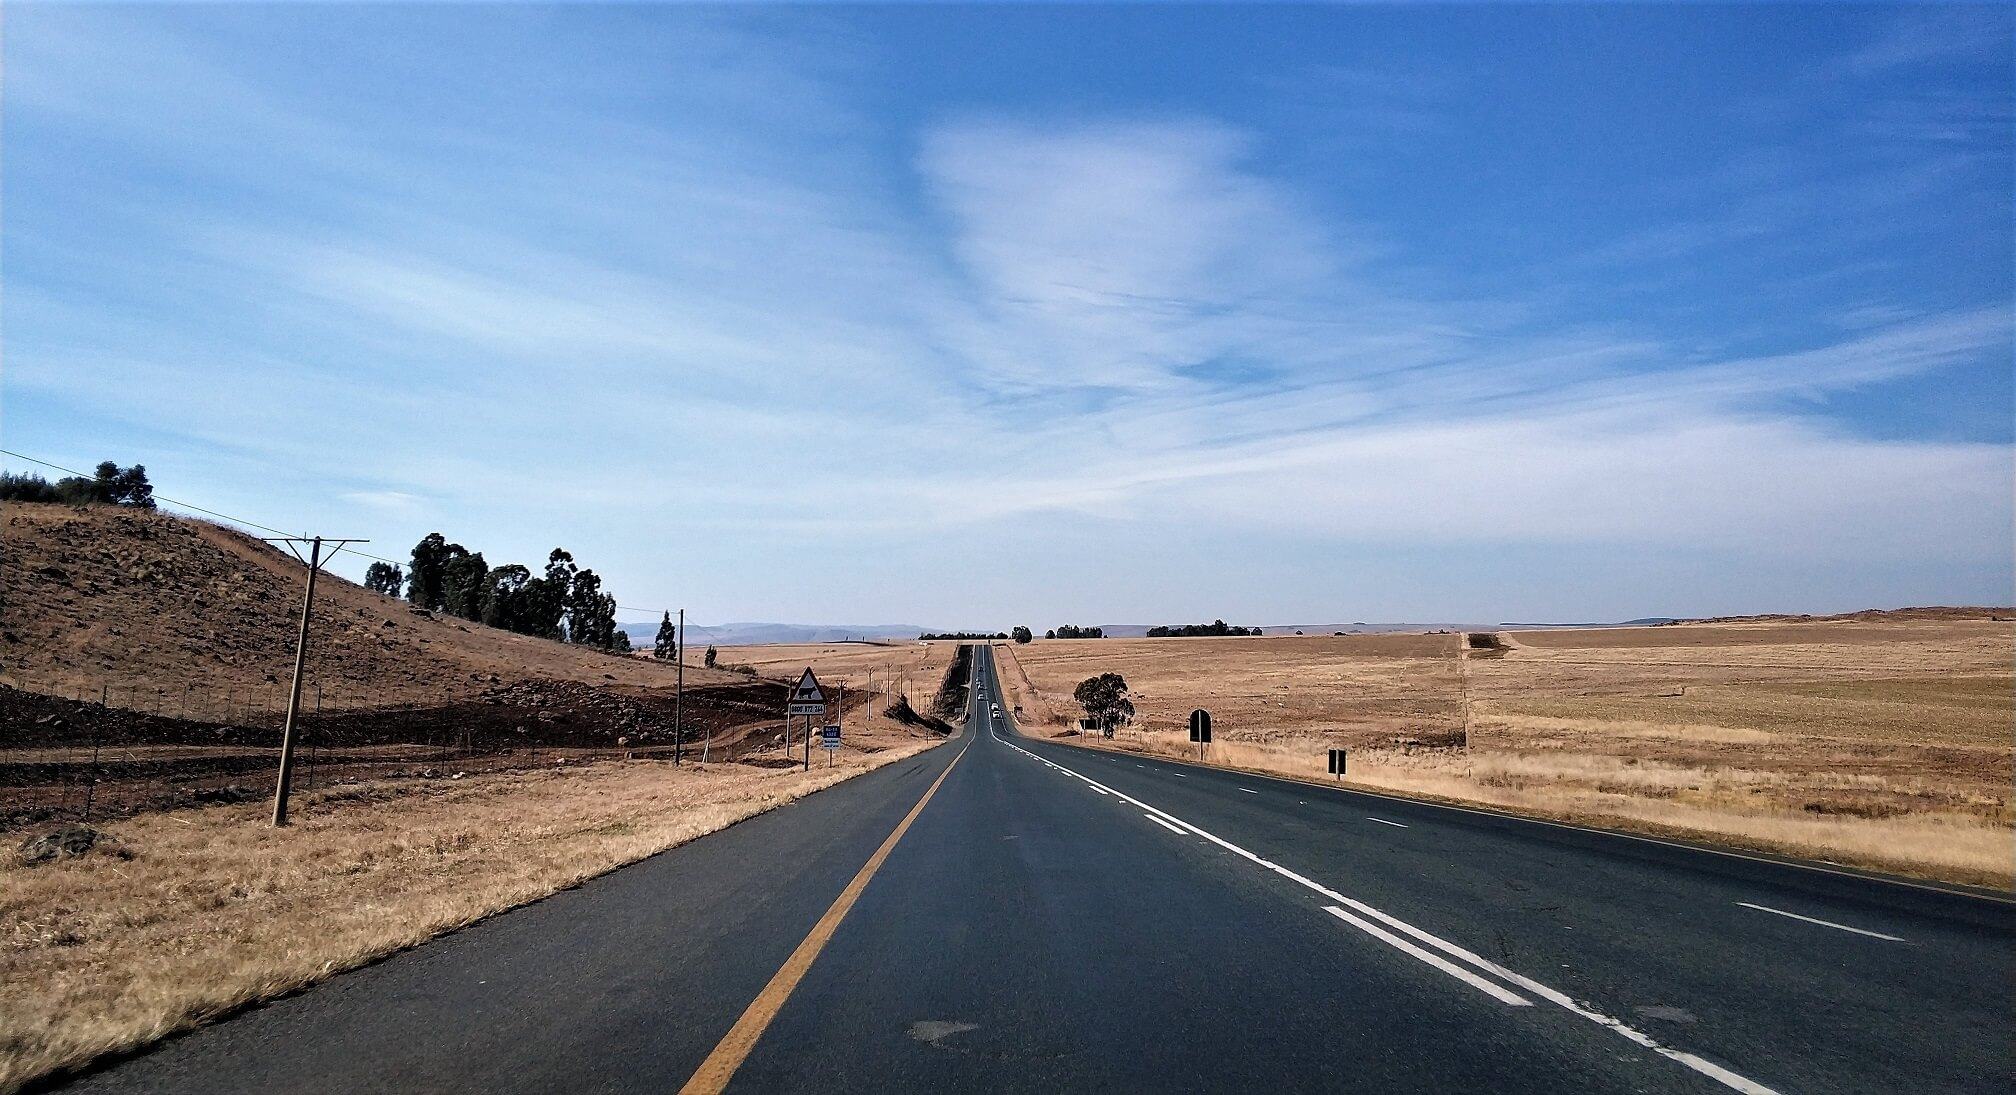 The road to Kruger National Park